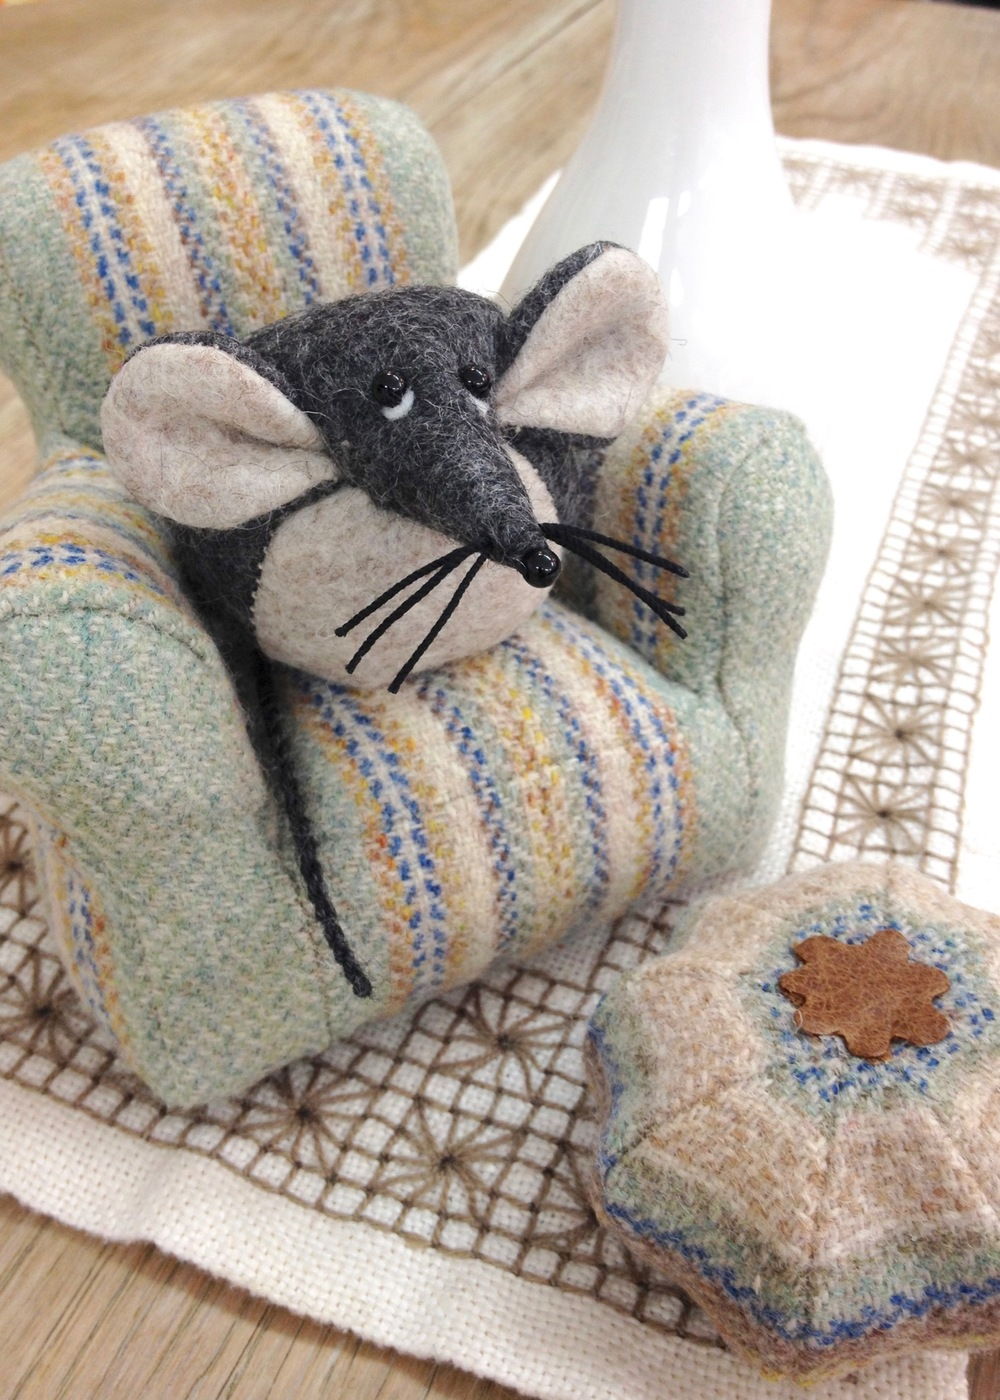 Mika the Mouse having a little rest on his tweed armchair handmade by Laura Mirjami | Mirjami Design.